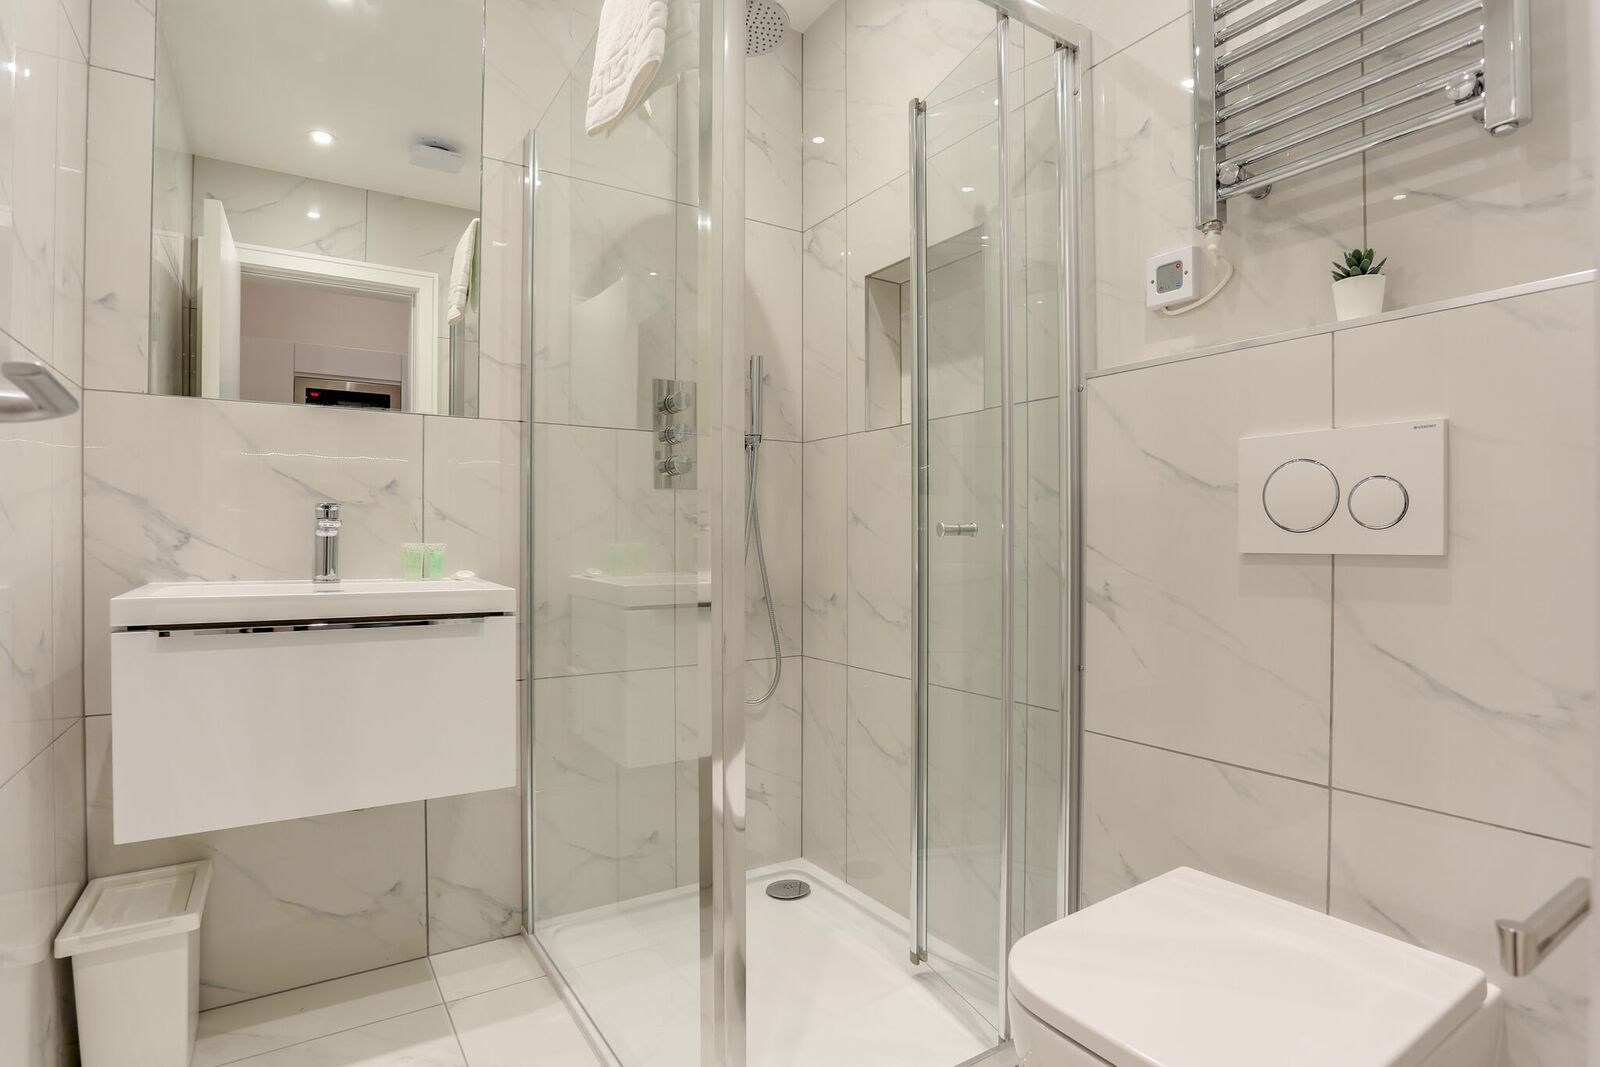 Serviced-Apartments-Queensborough-bordering-Hyde-Park-provides-contemporary-formed-studios--Fully-Furnished,-Wi-Fi,-Extra-Amenities-and-Luggage-Storage!